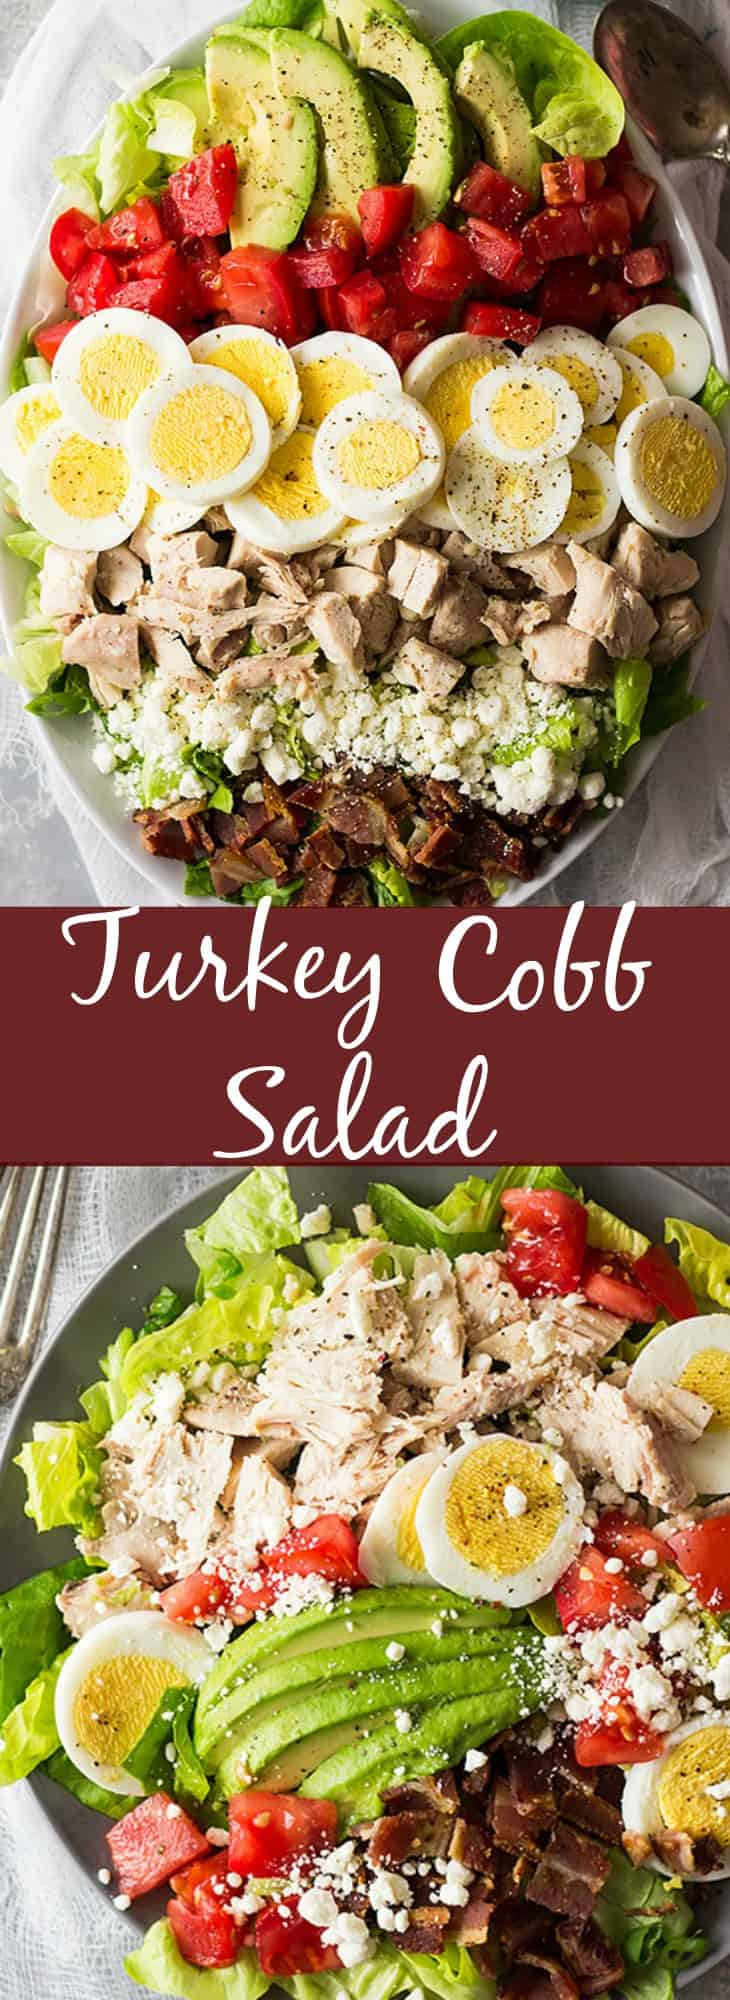 This Turkey Cobb Salad is a great main dish salad to use up some leftover turkey (or you can use chicken too)! It's healthy, full of flavor and will leave you begging for more! | www.countrysidecravings.com